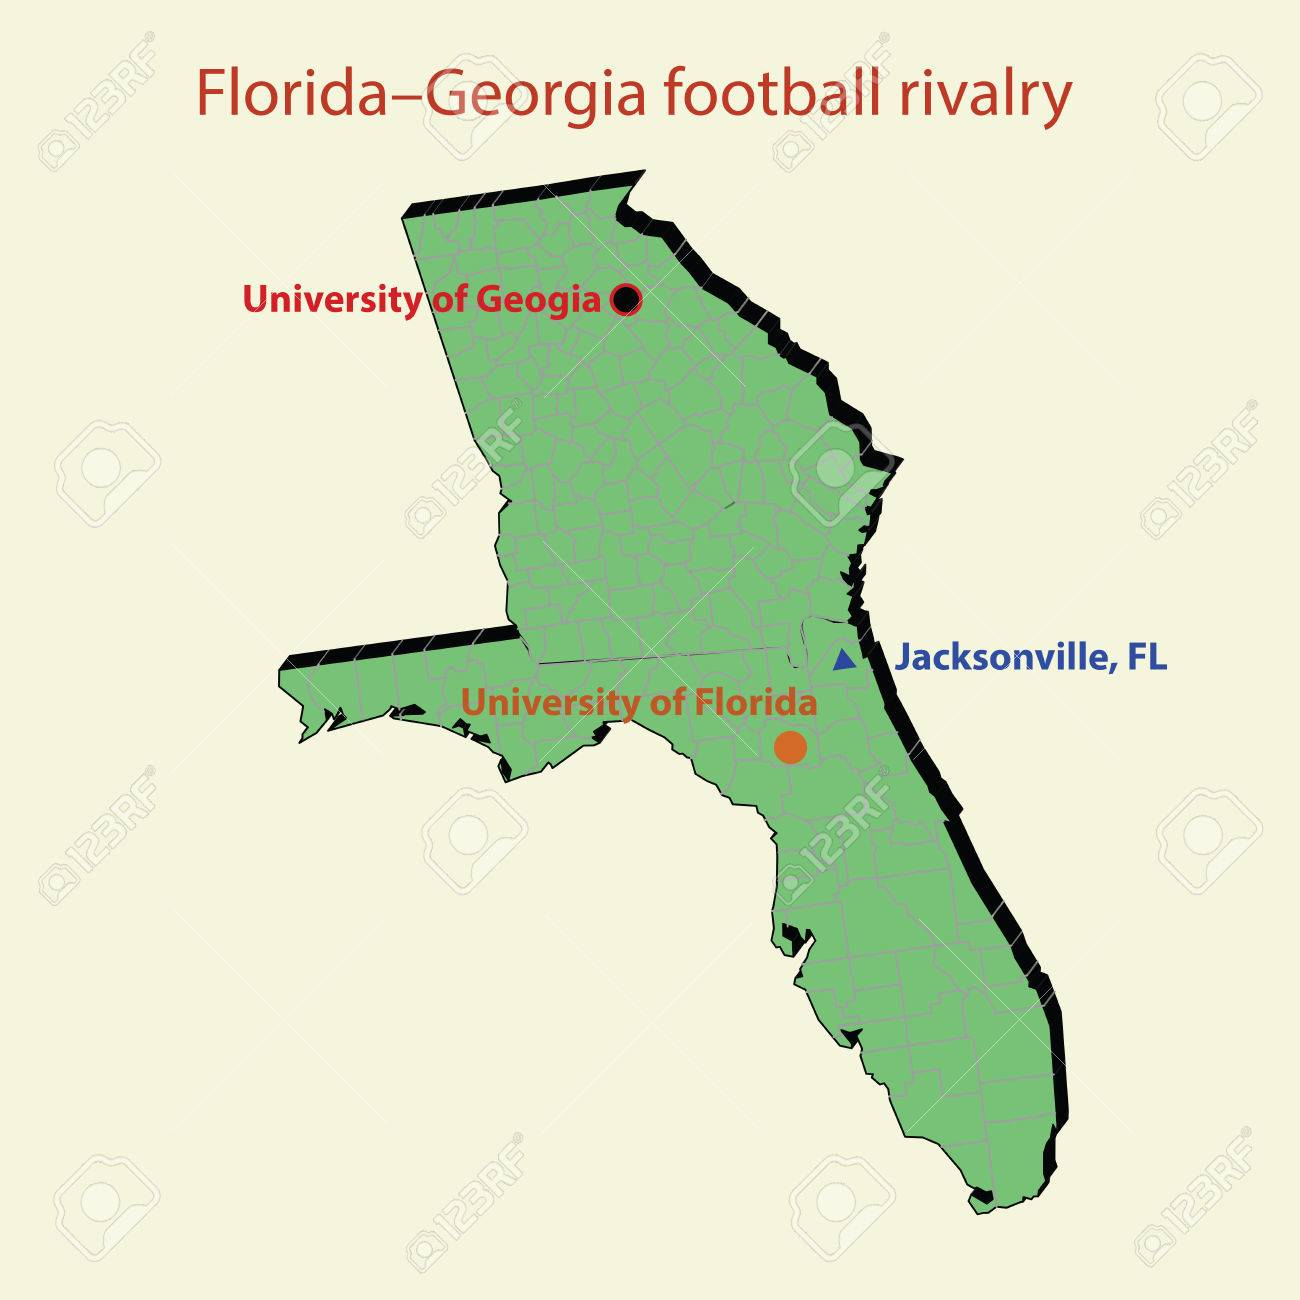 Florida And Georgia Map.3d Map Florida Georgia Football Rivalry In Jacksonville Royalty Free